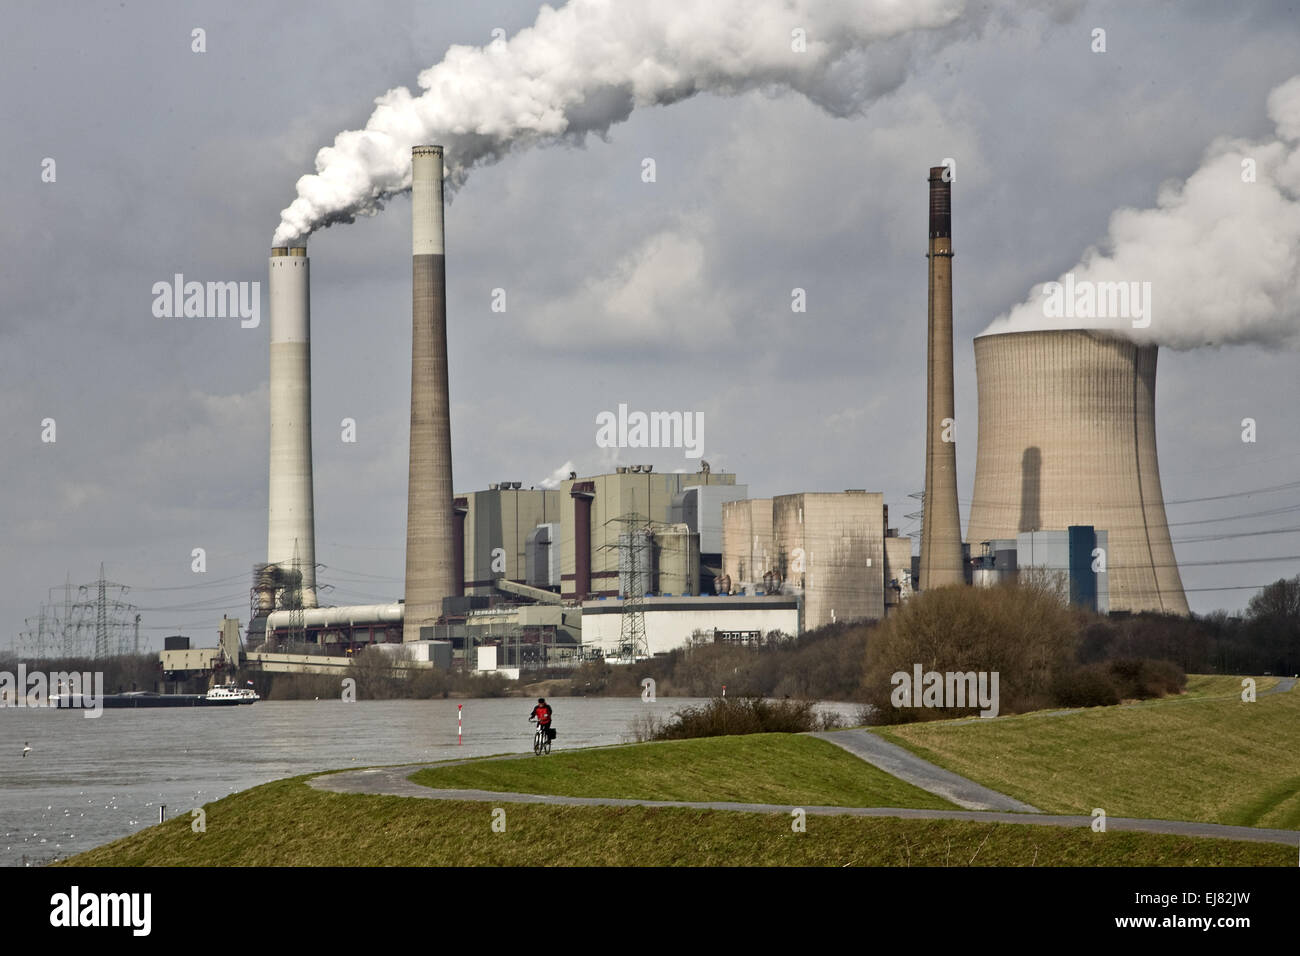 Coal-fired power plant, Voerde, Germany - Stock Image